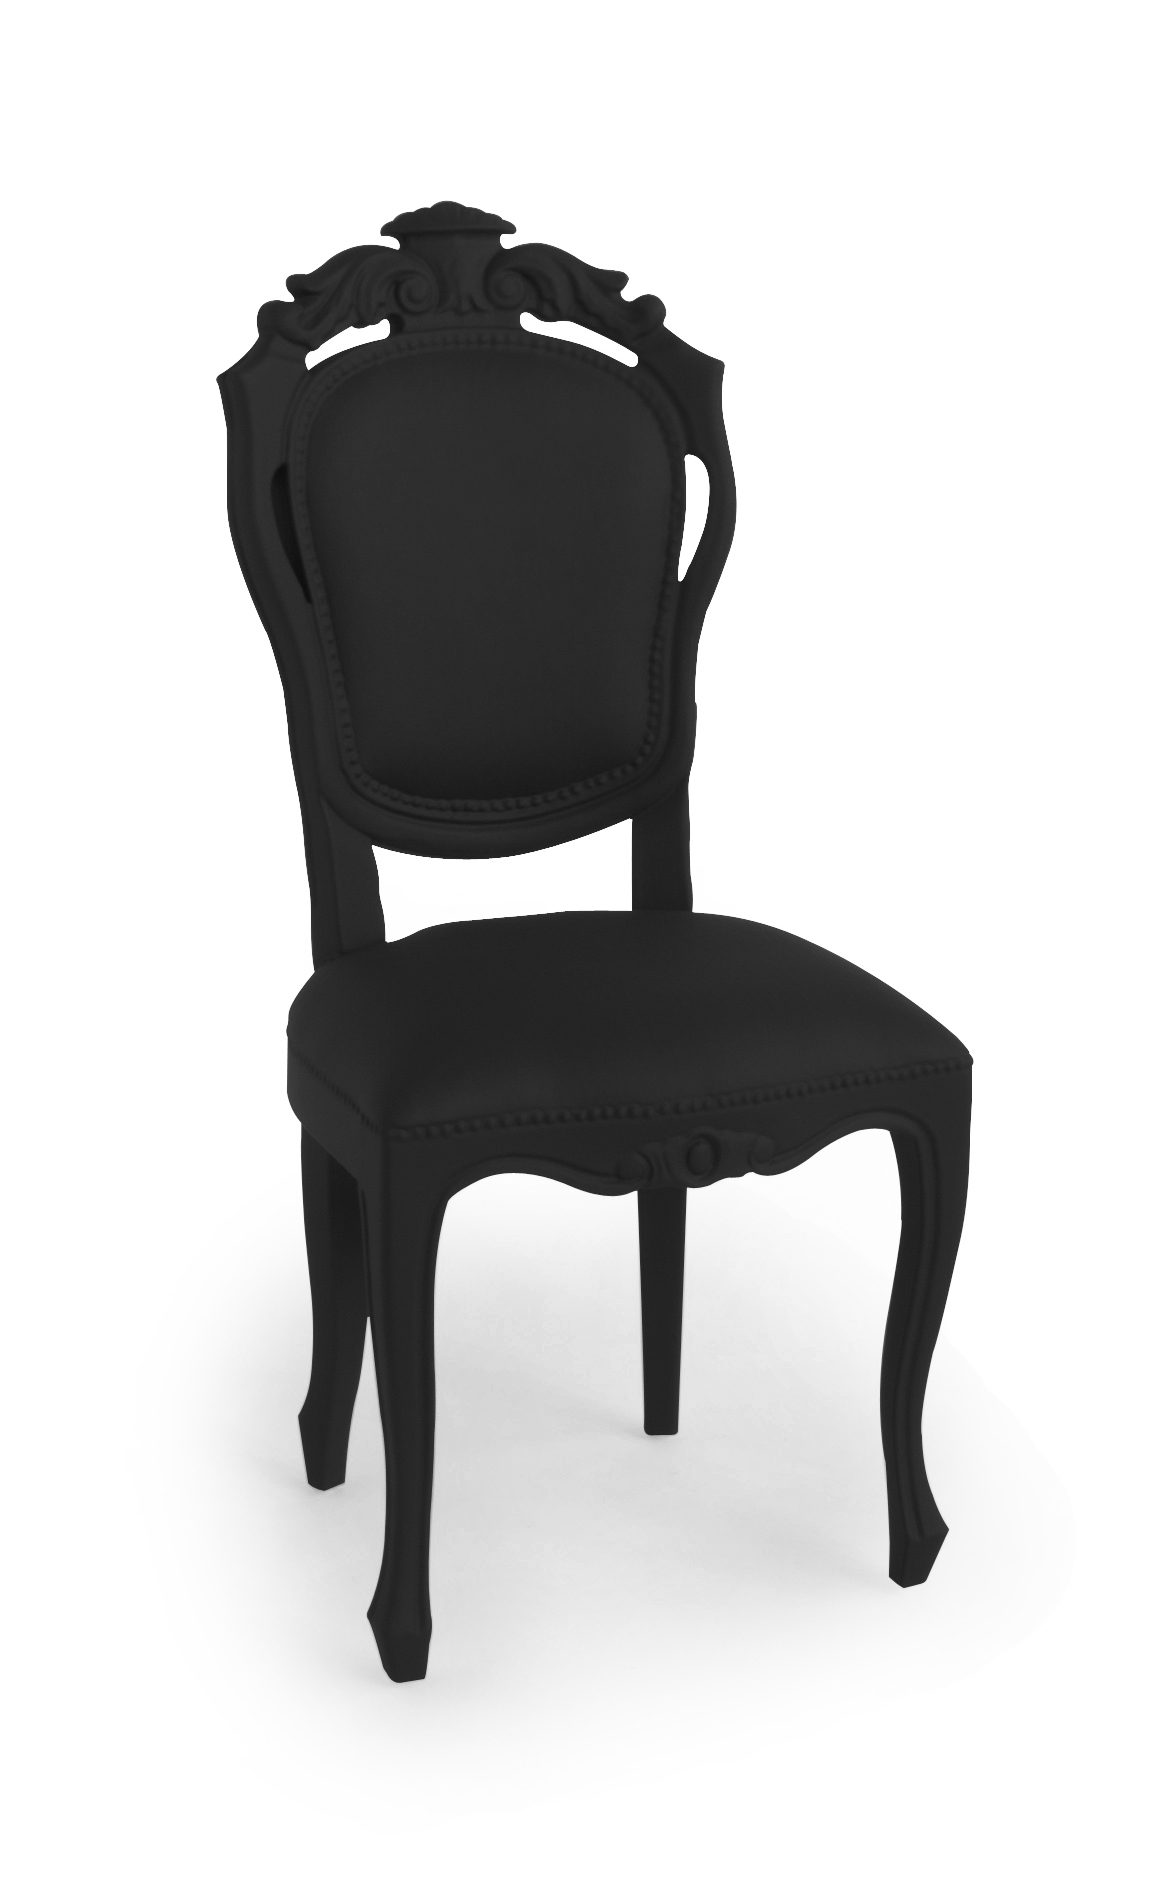 Jspr Plastic Fantastic Dining Chair Black Exclusieve Stoel Indoor Outdoor